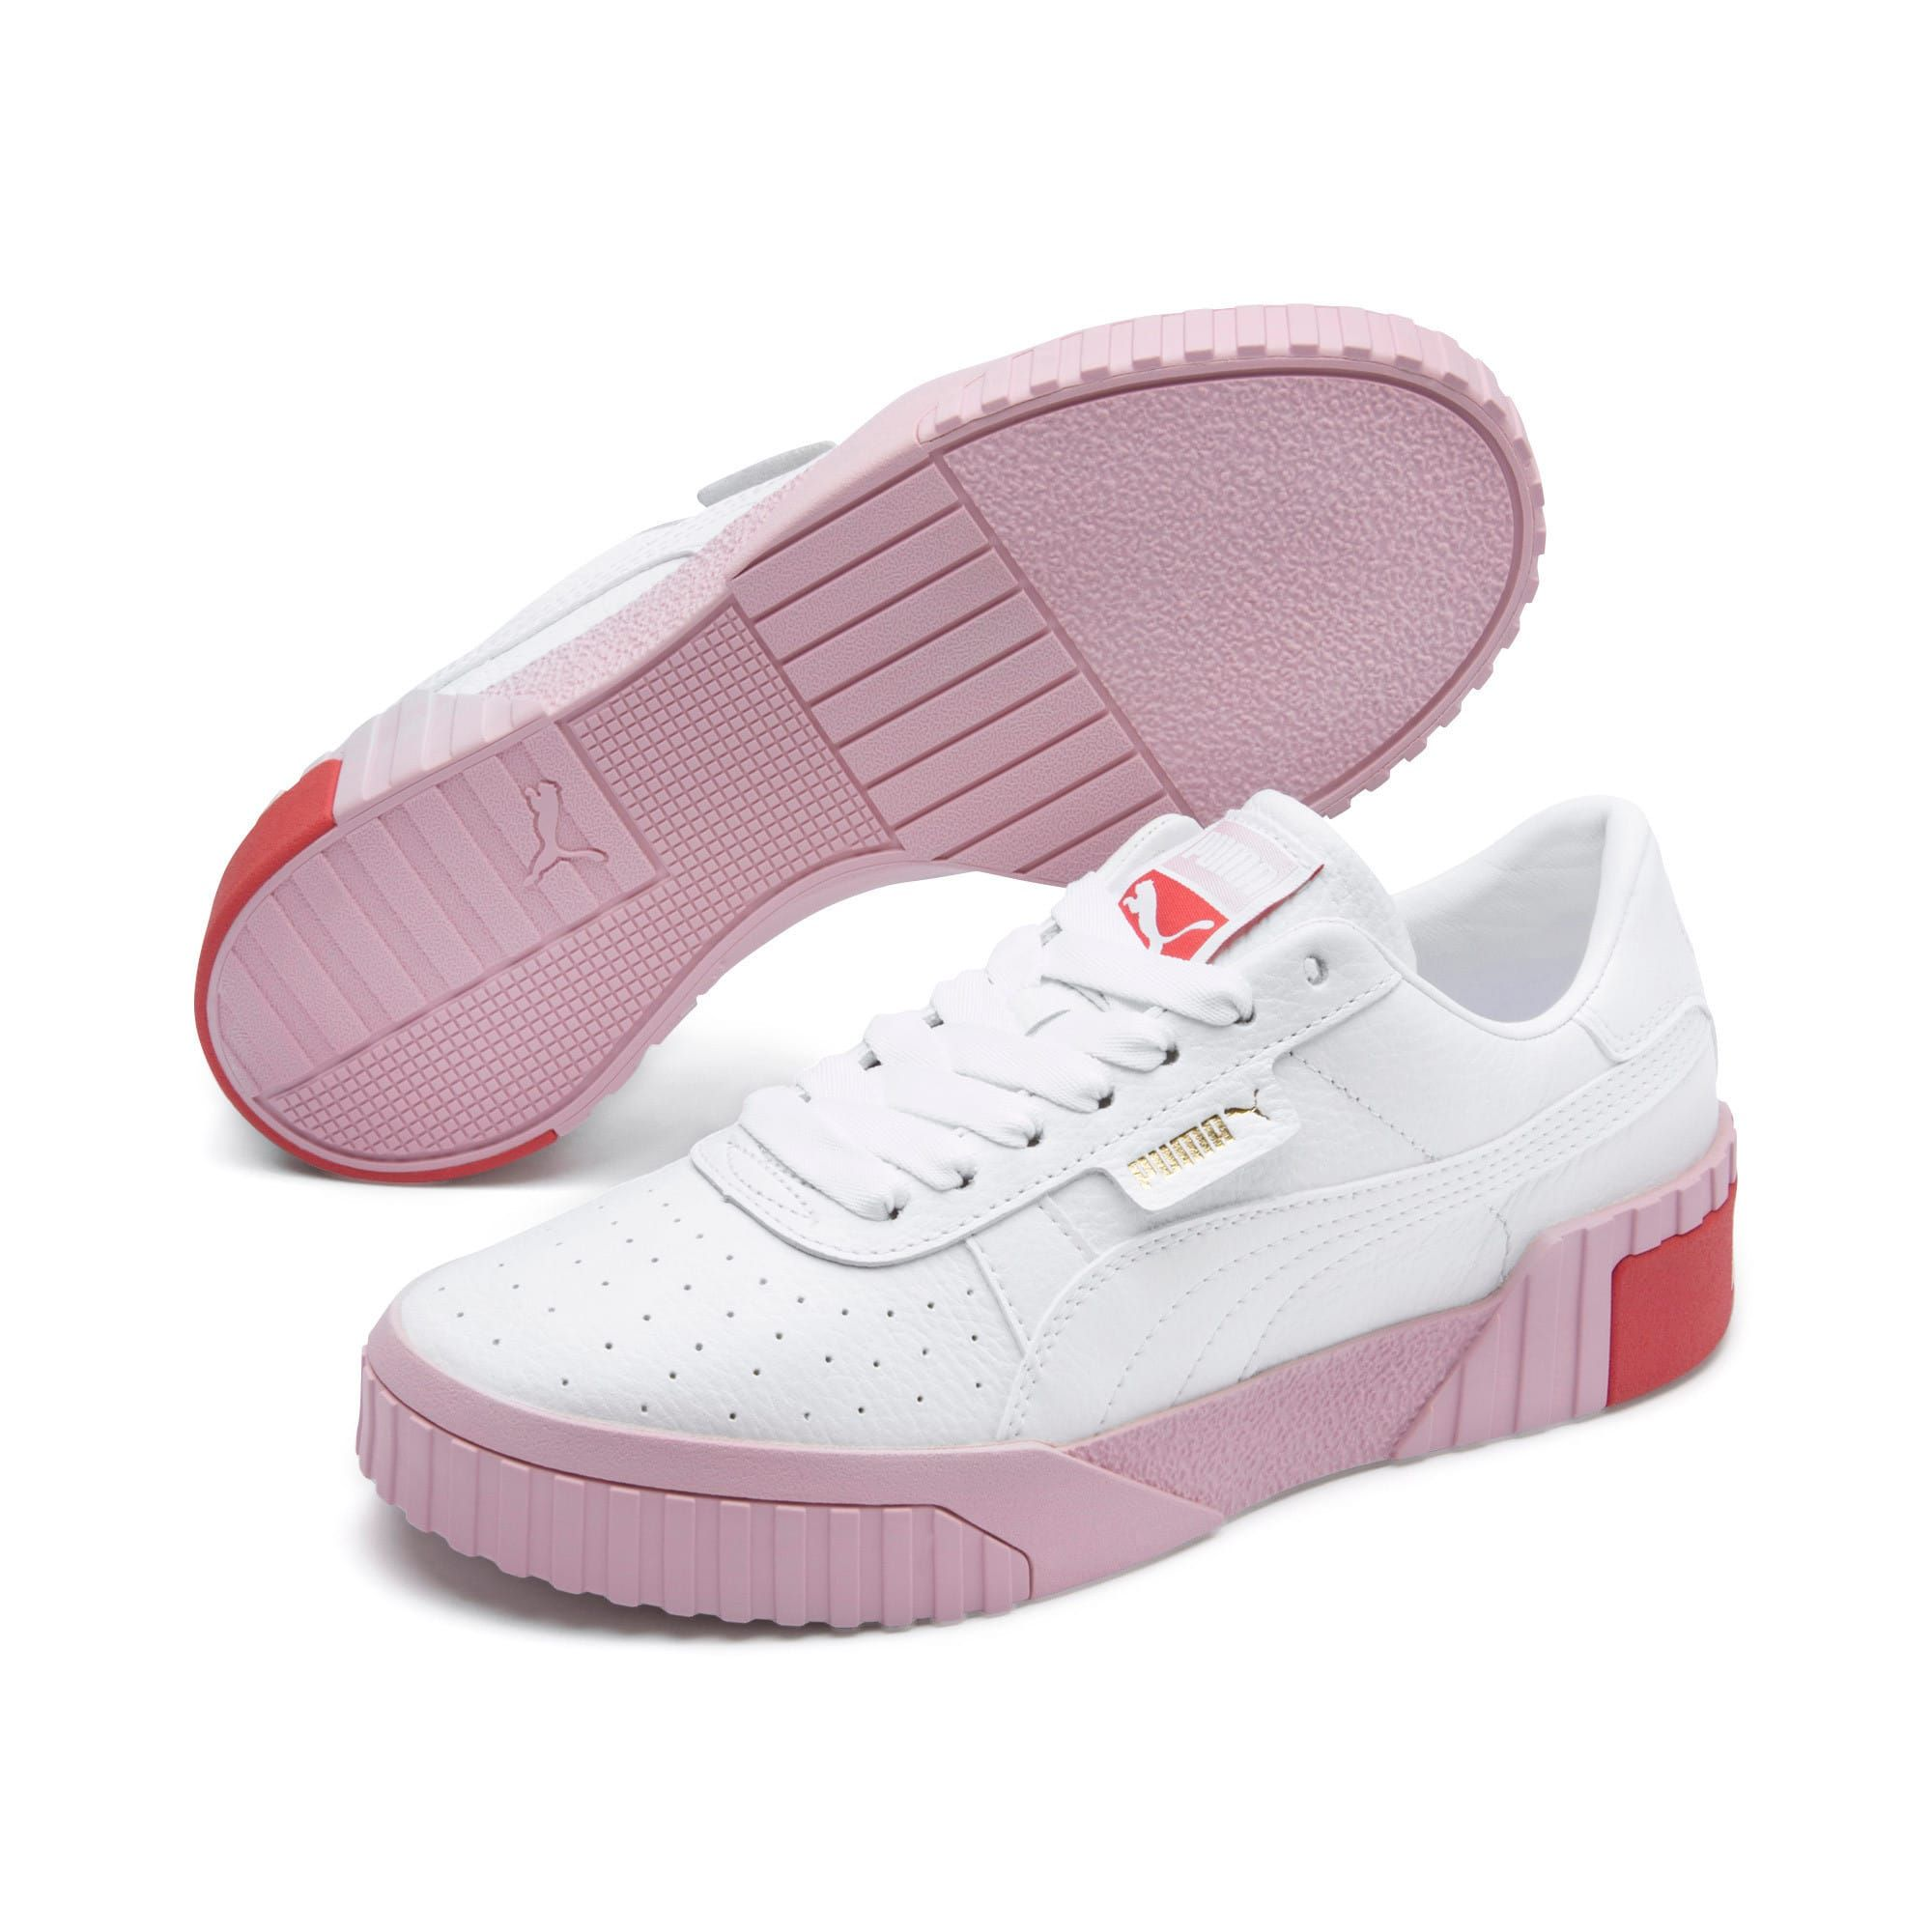 PUMA Cali Women's Trainers in White/Pale Pink size 6.5 ...